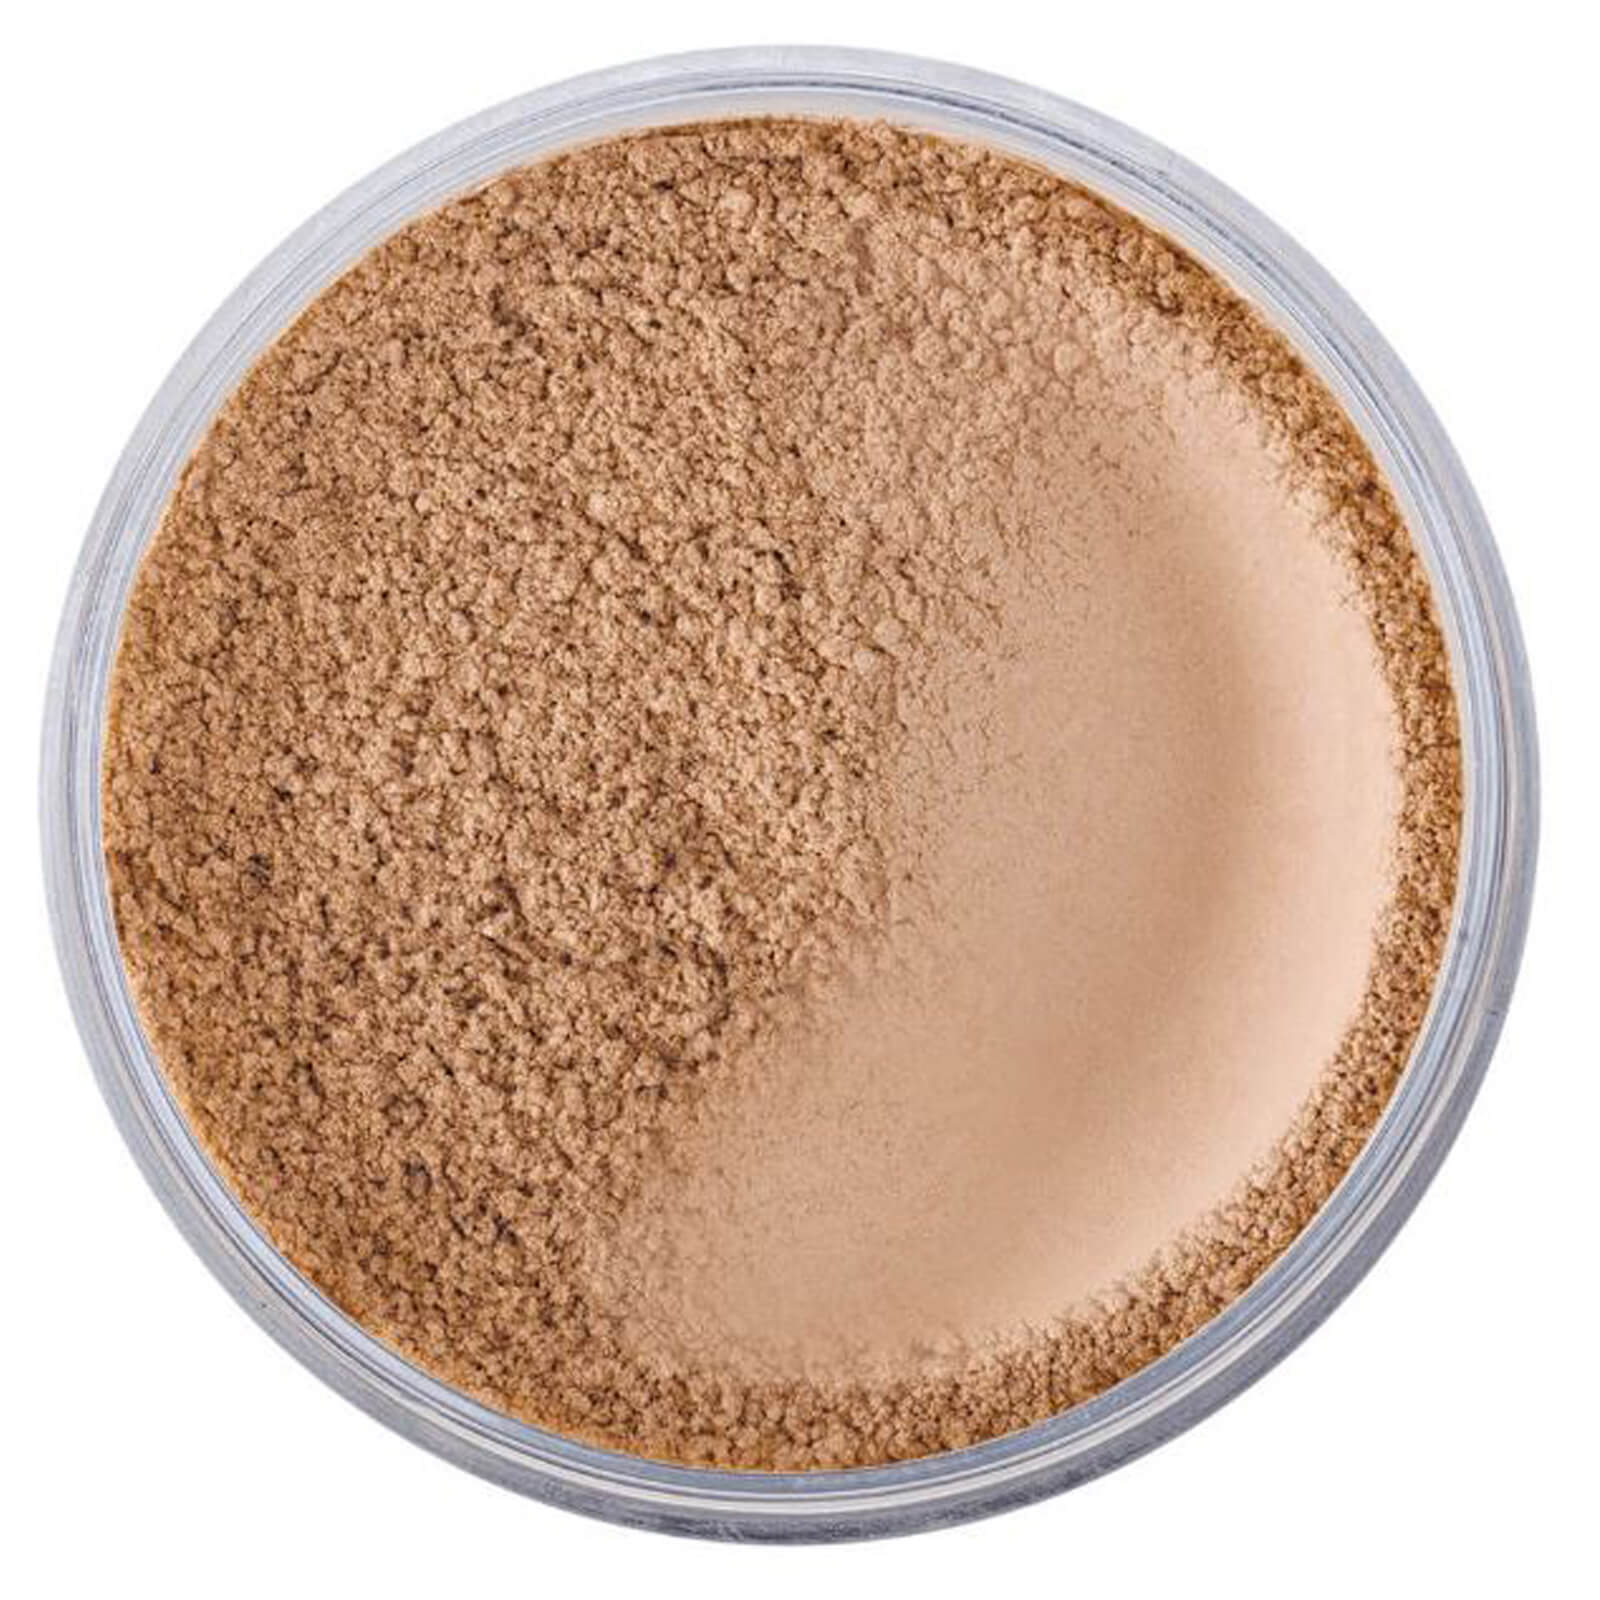 nude by nature Natural Mineral Cover - Beige 15g | Buy